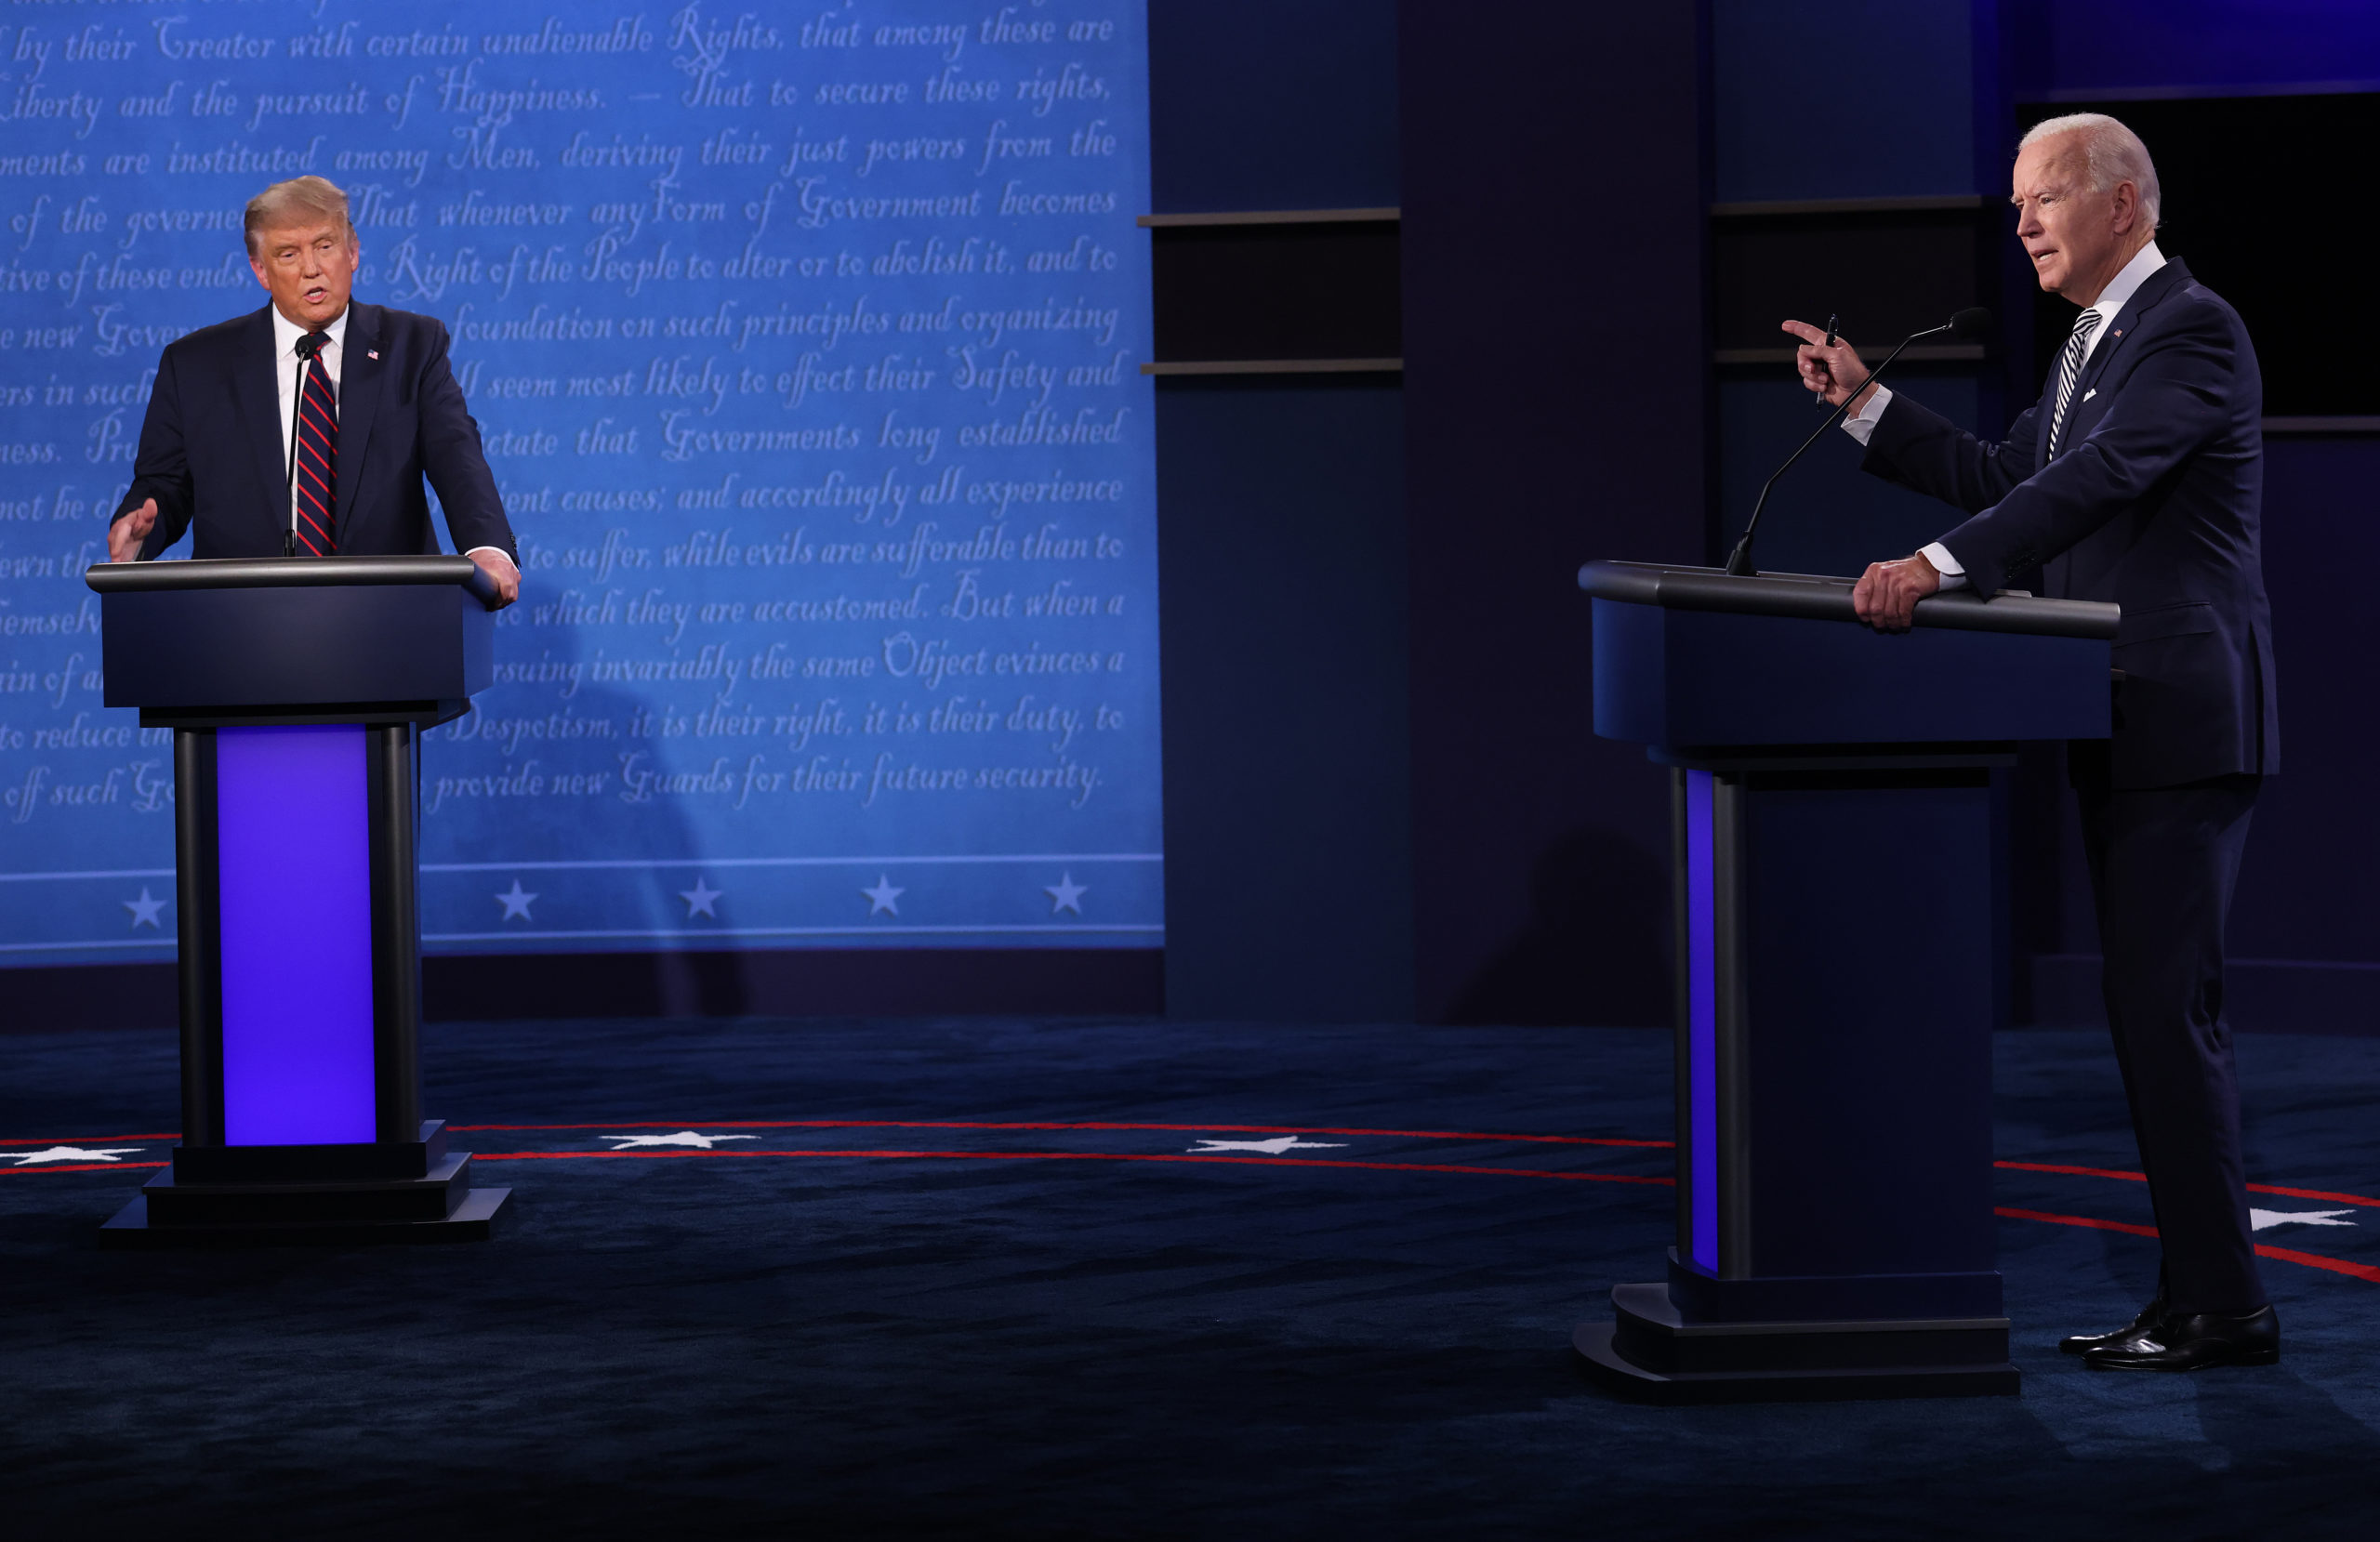 CLEVELAND, OHIO - SEPTEMBER 29: U.S. President Donald Trump and Democratic presidential nominee Joe Biden participate in the first presidential debate at the Health Education Campus of Case Western Reserve University on September 29, 2020 in Cleveland, Ohio. This is the first of three planned debates between the two candidates in the lead up to the election on November 3. (Photo by Win McNamee/Getty Images)